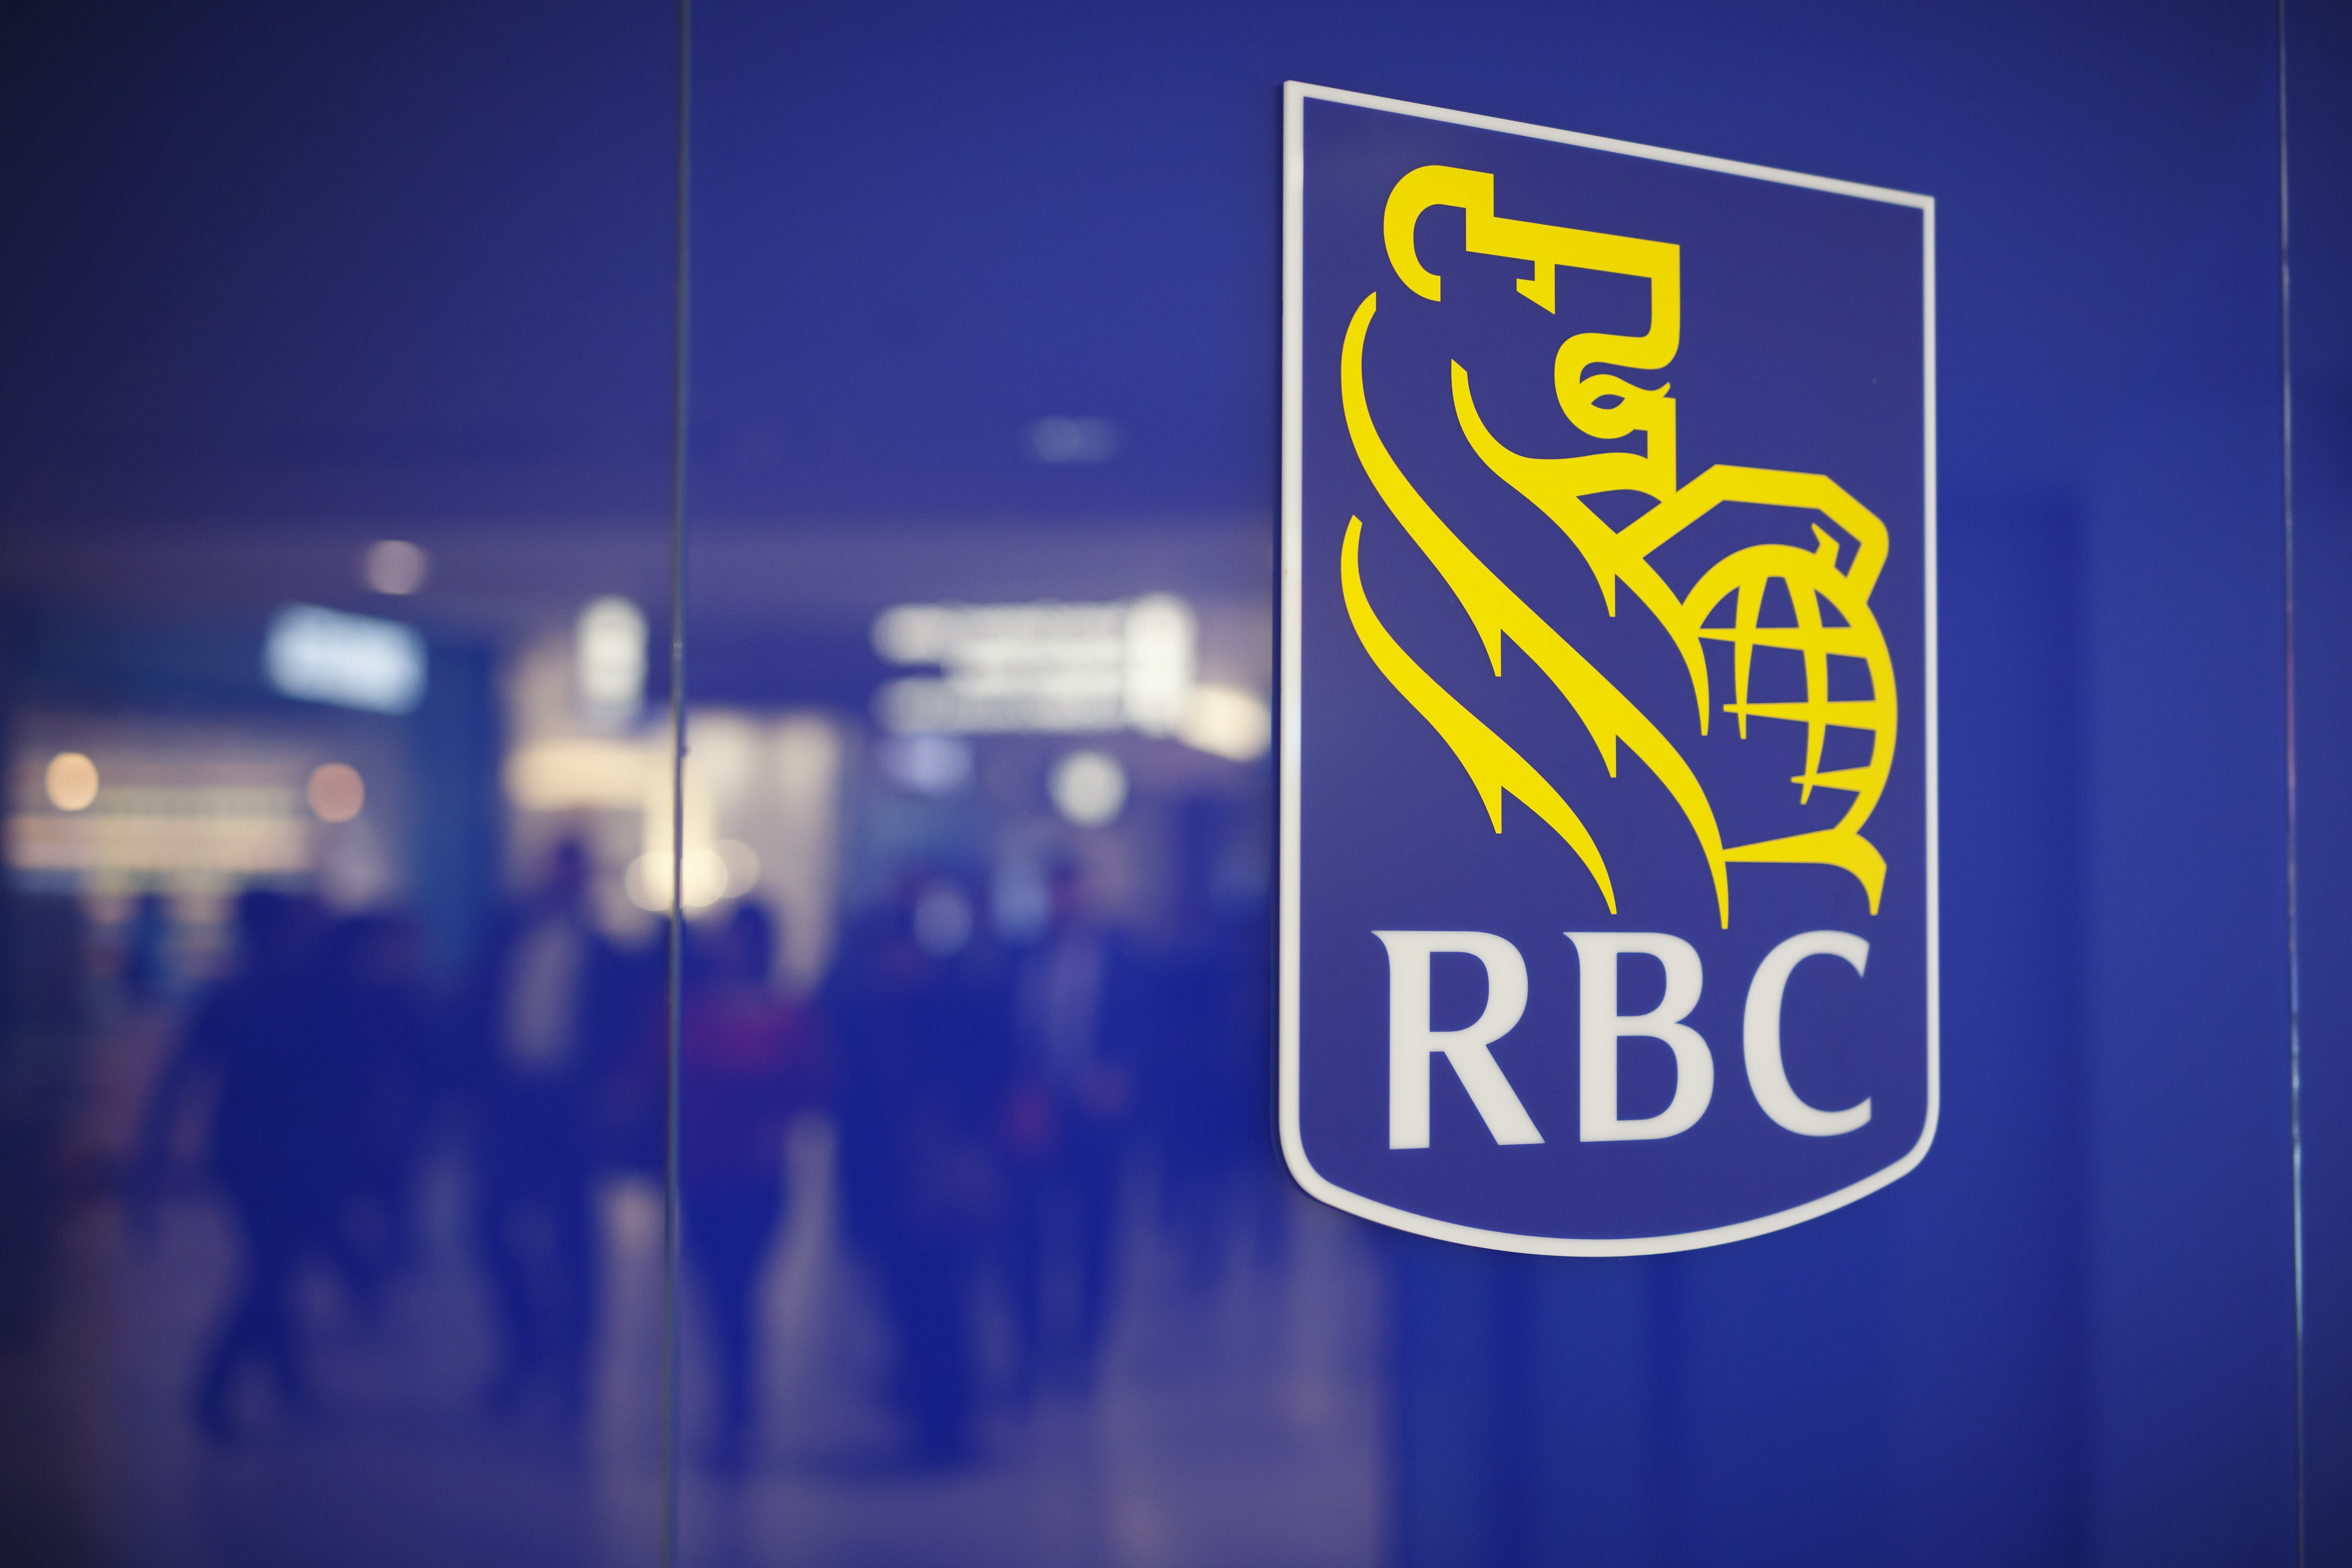 https://assets.sourcemedia.com/3c/49/95984aa14f40ae6369be5052dad5/royal-bank-of-canada-rbc-headquarters-building-in-toronto-canada-on-thursday-april-6-2017-bloomberg-news.jpg